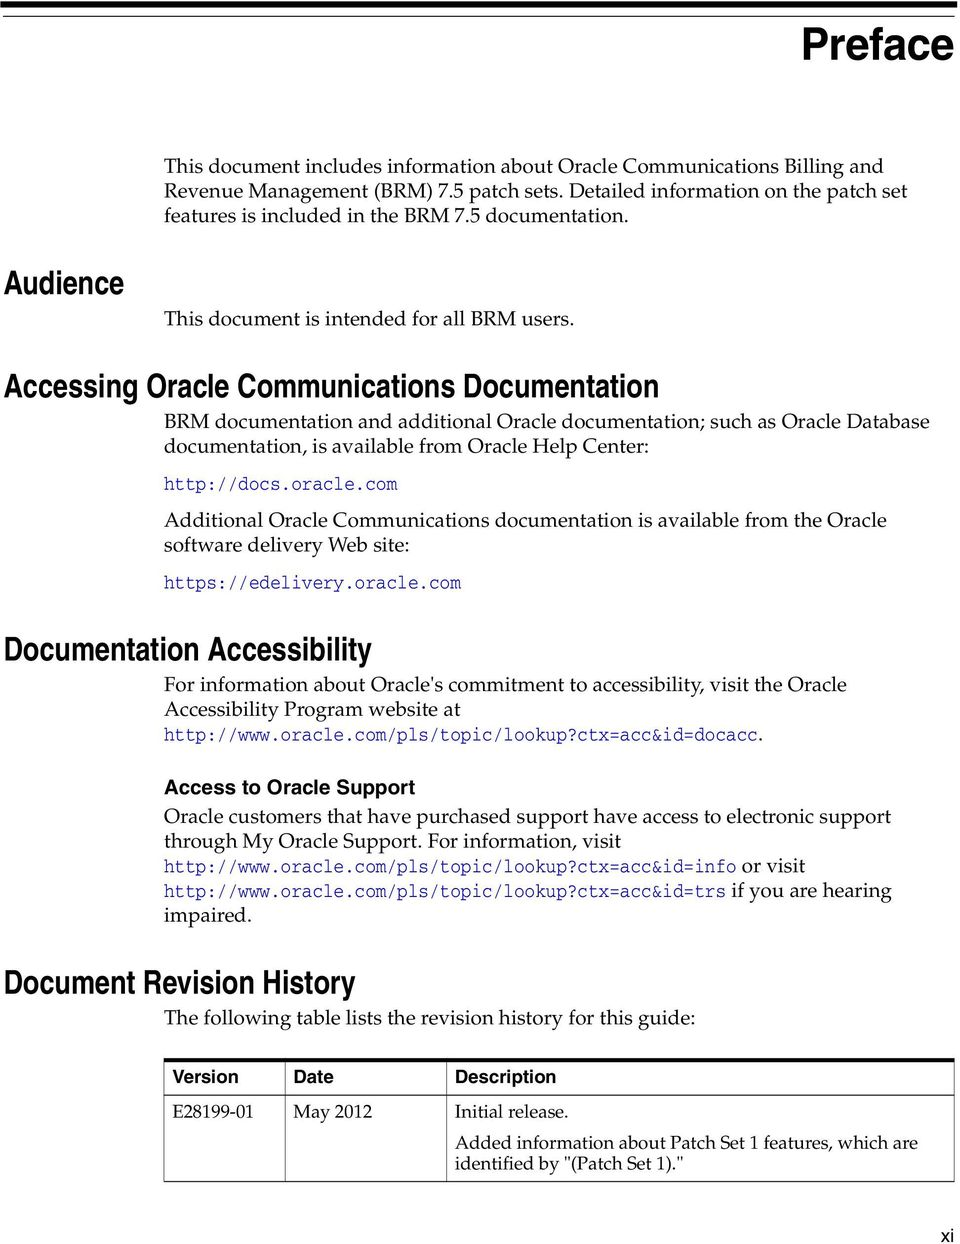 Accessing Oracle Communications Documentation BRM documentation and additional Oracle documentation; such as Oracle Database documentation, is available from Oracle Help Center: http://docs.oracle.